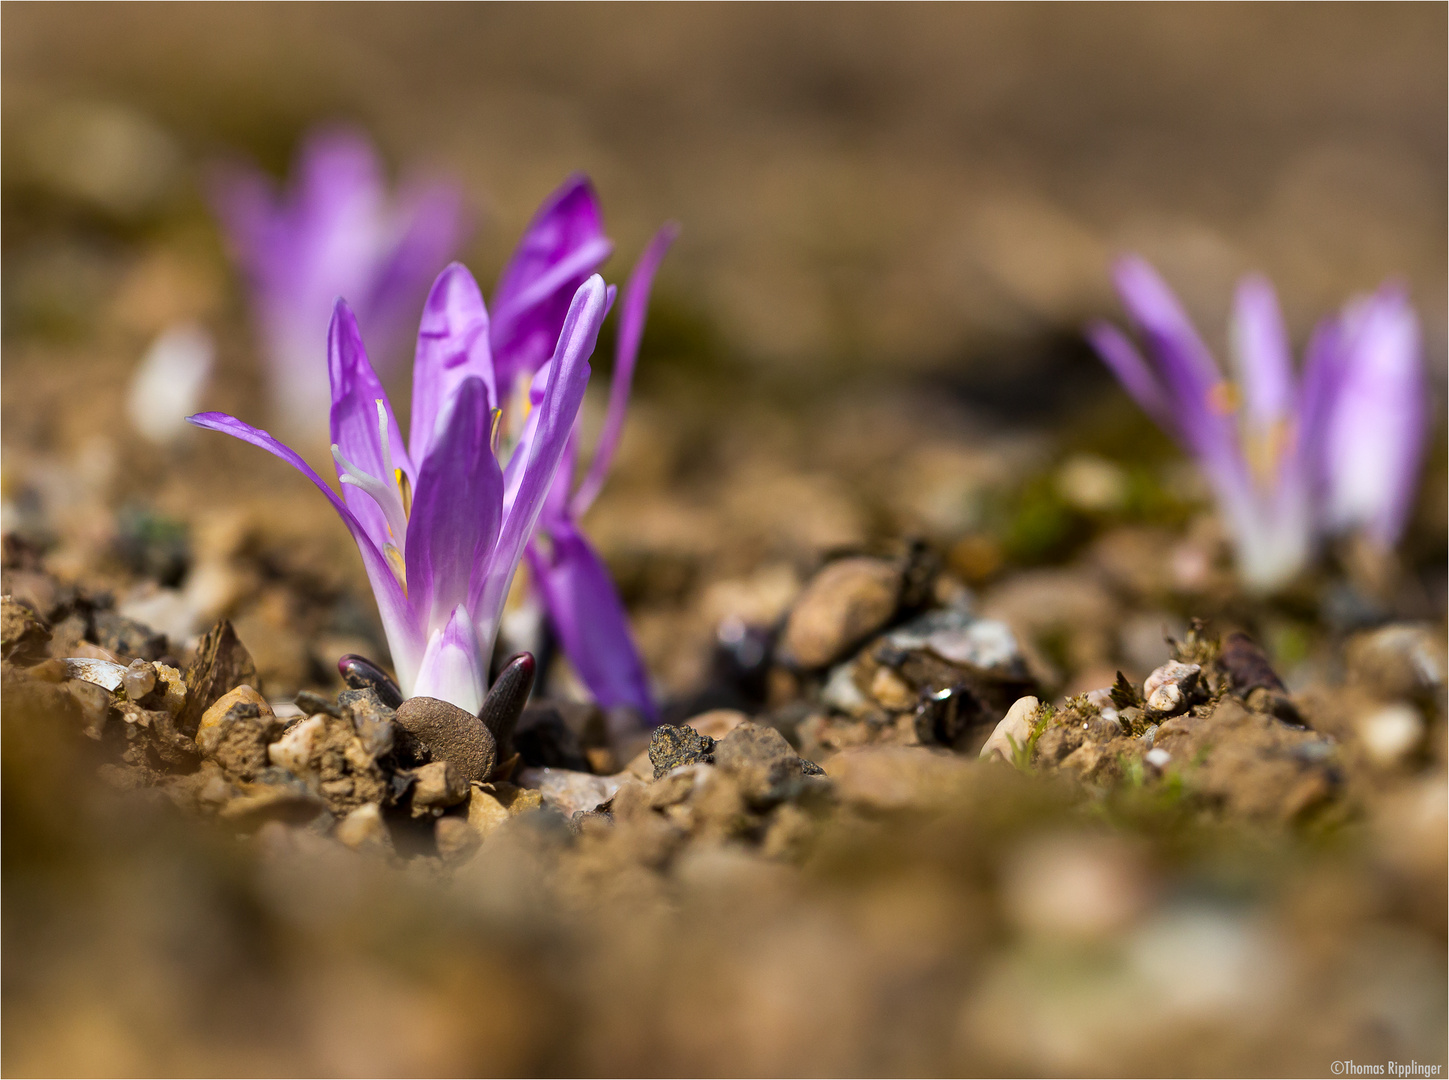 Frühlings Lichtblume (Colchicum bulbocodium)